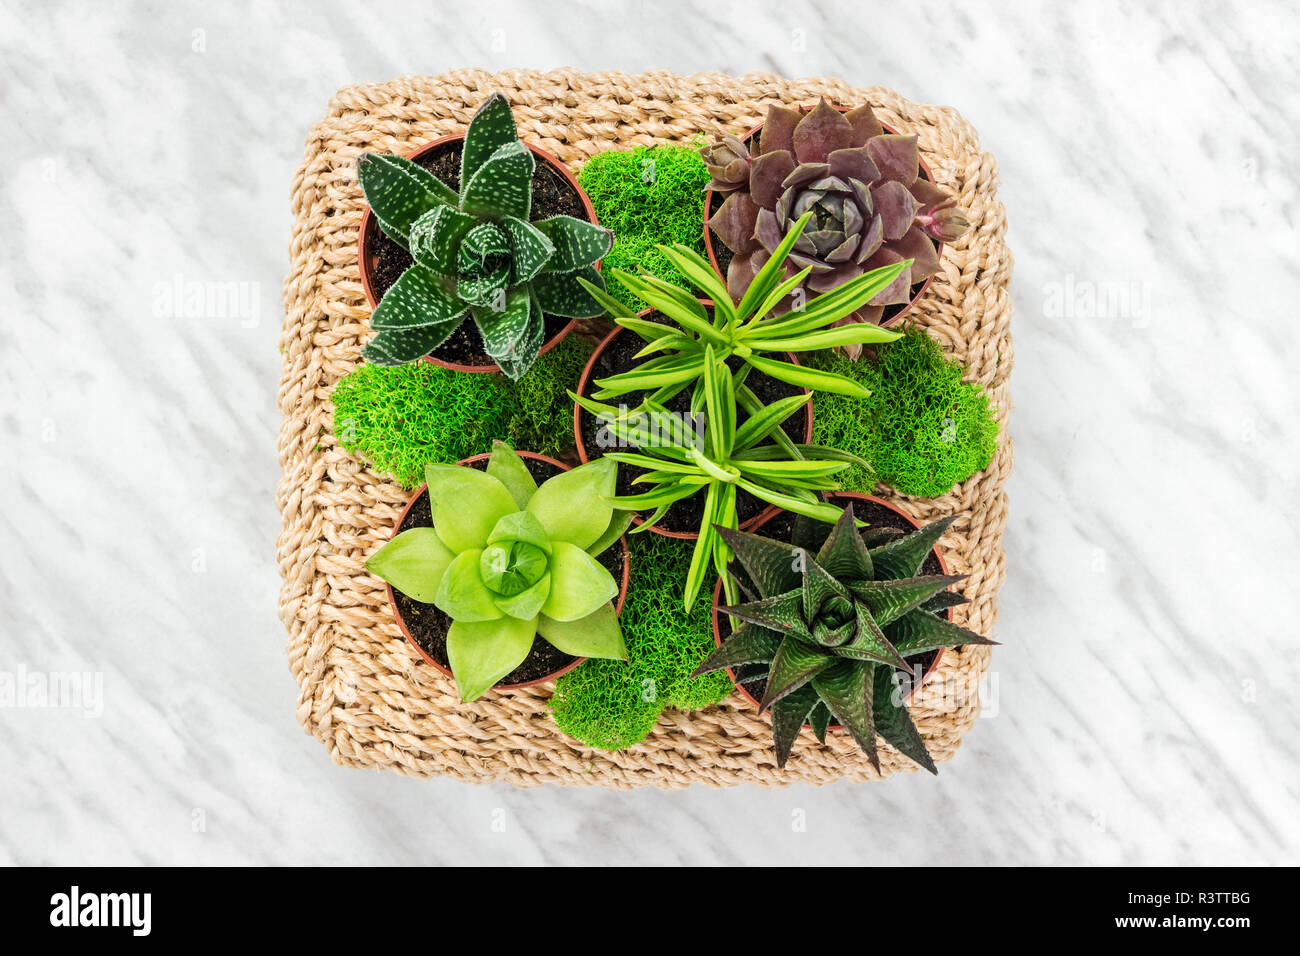 Floral arrangement with succulent plants and green moss, on marble background. Stock Photo